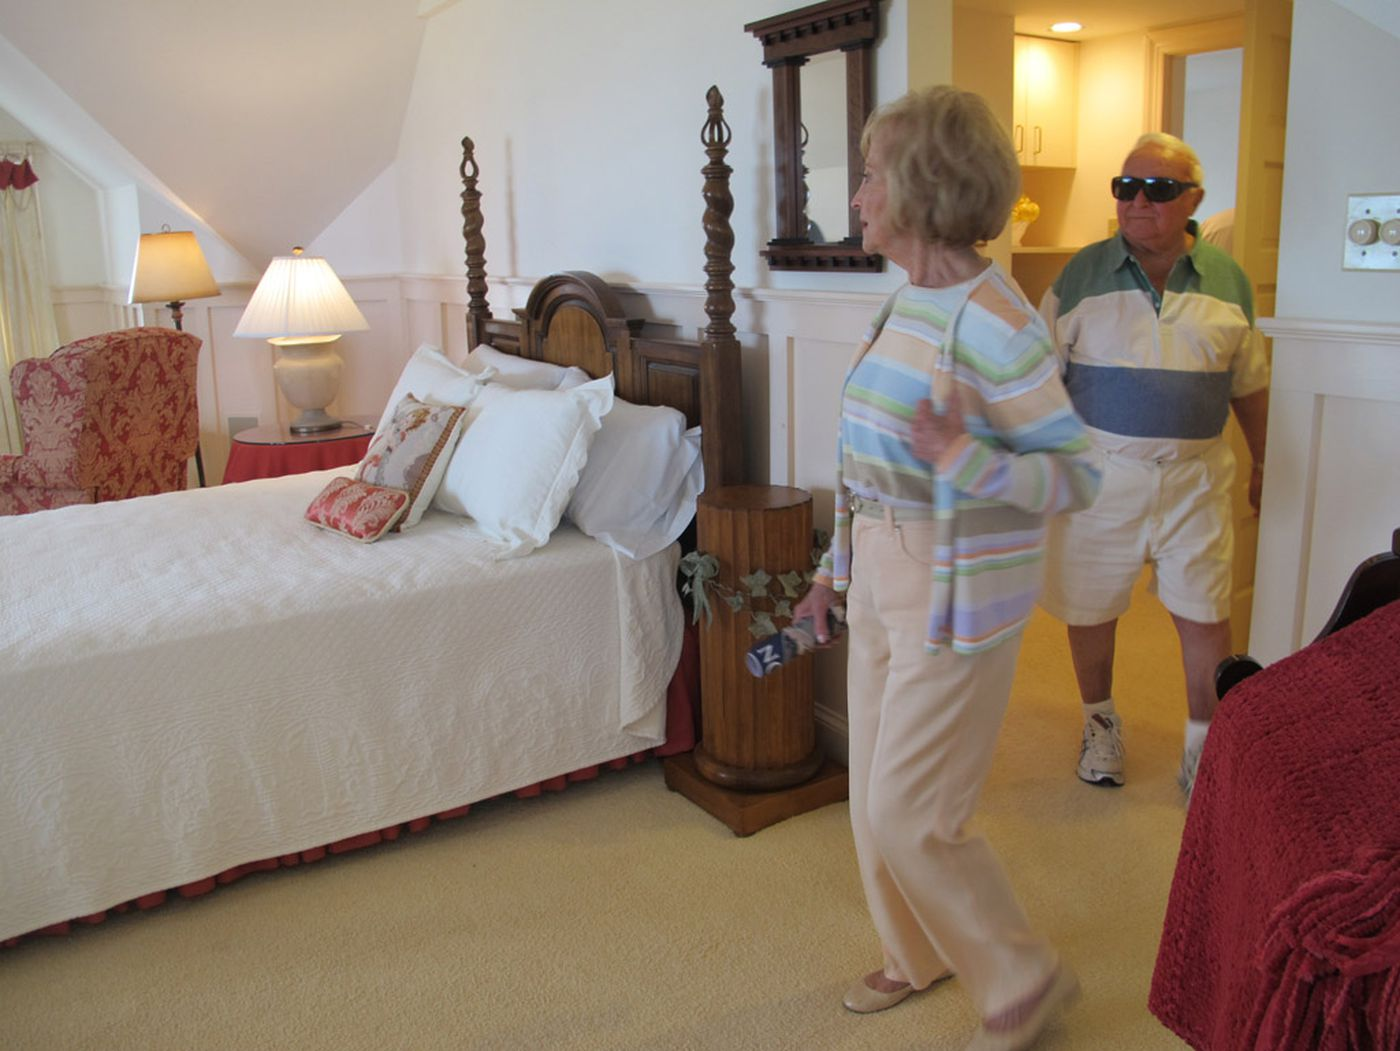 Archdiocese villa: 19 rooms with ocean view